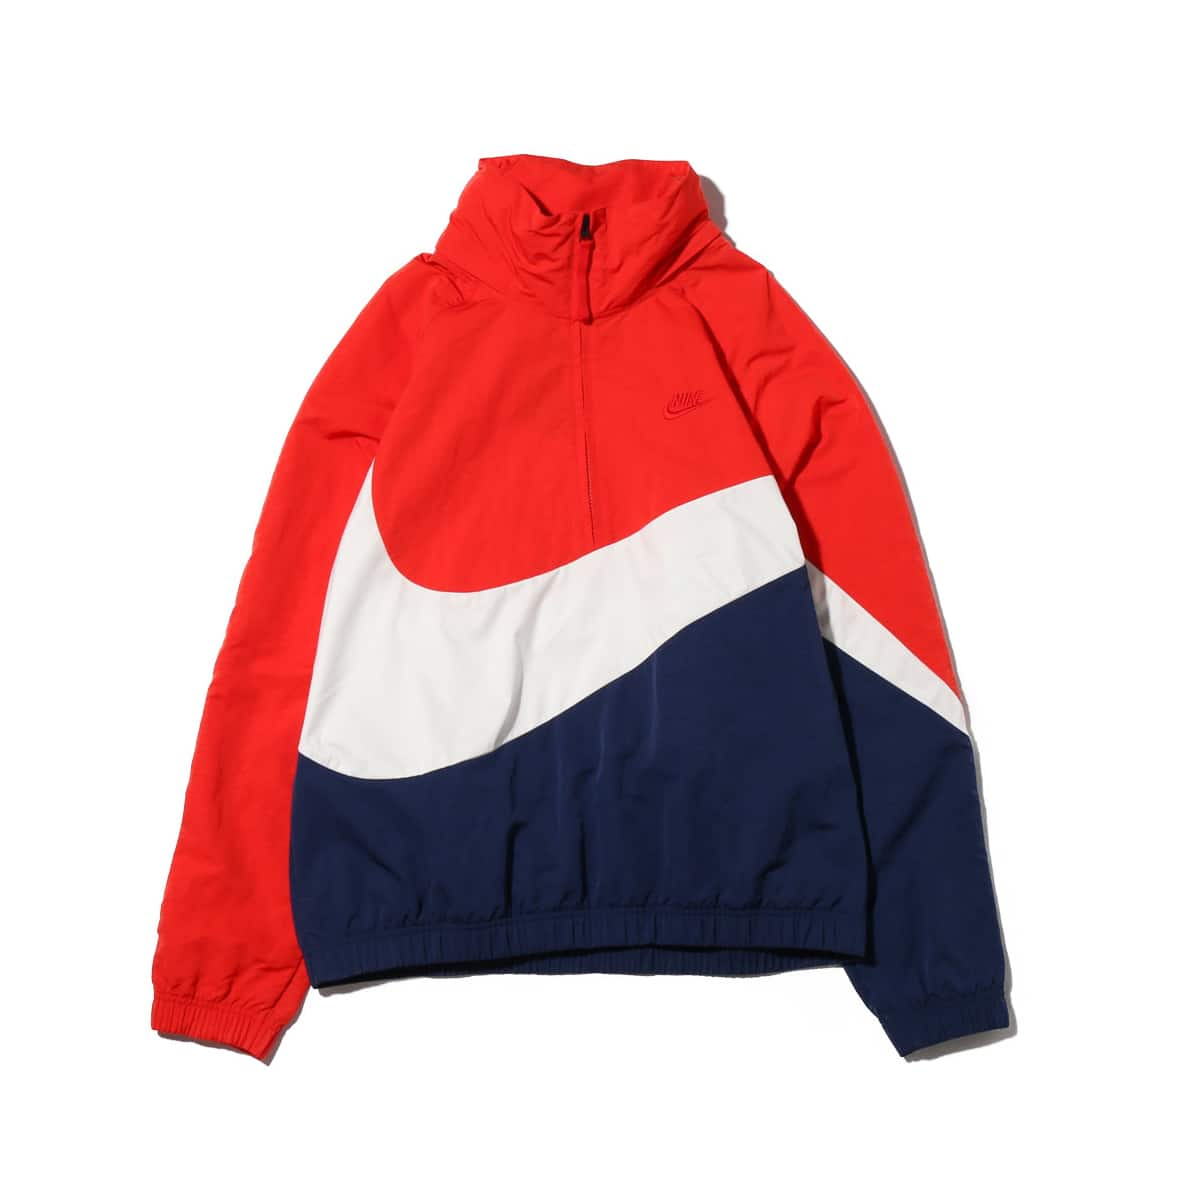 NIKE AS M NSW JKT HD ANRK WVN QS  UNIVERSITY RED/SUMMIT WHITE_photo_large